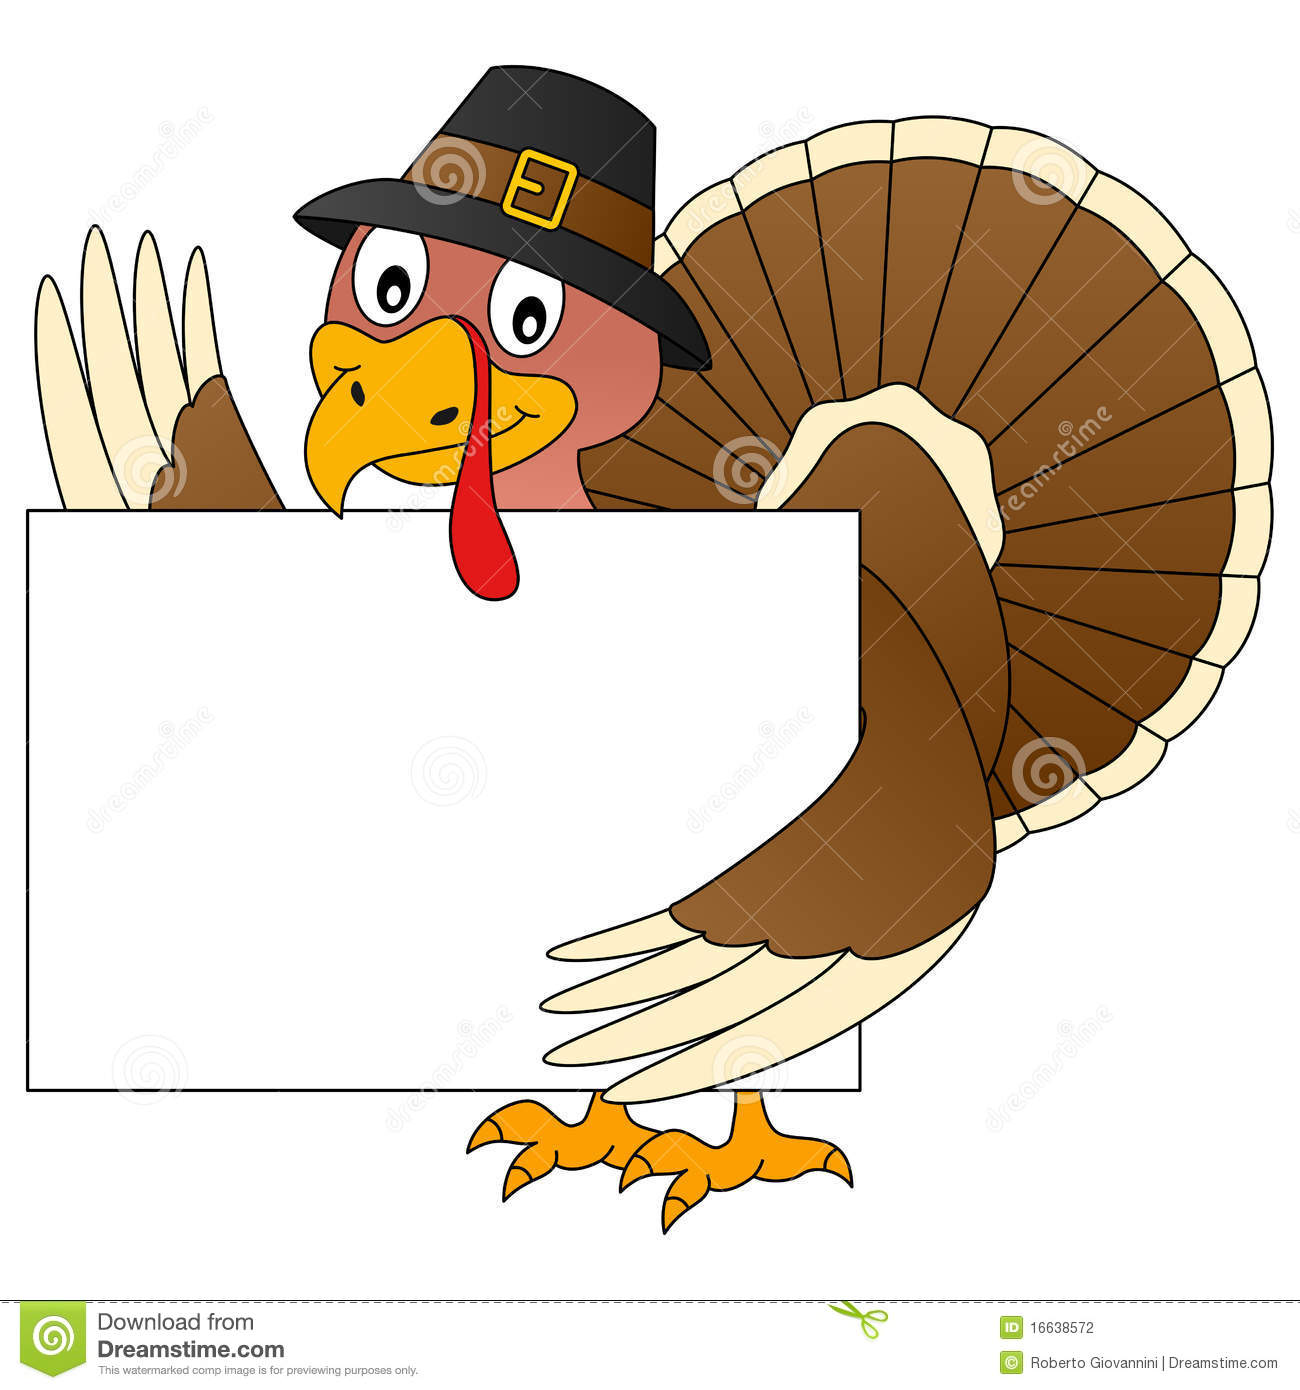 8 Thanksgiving Patriotic Clipart! - The Graphics Fairy